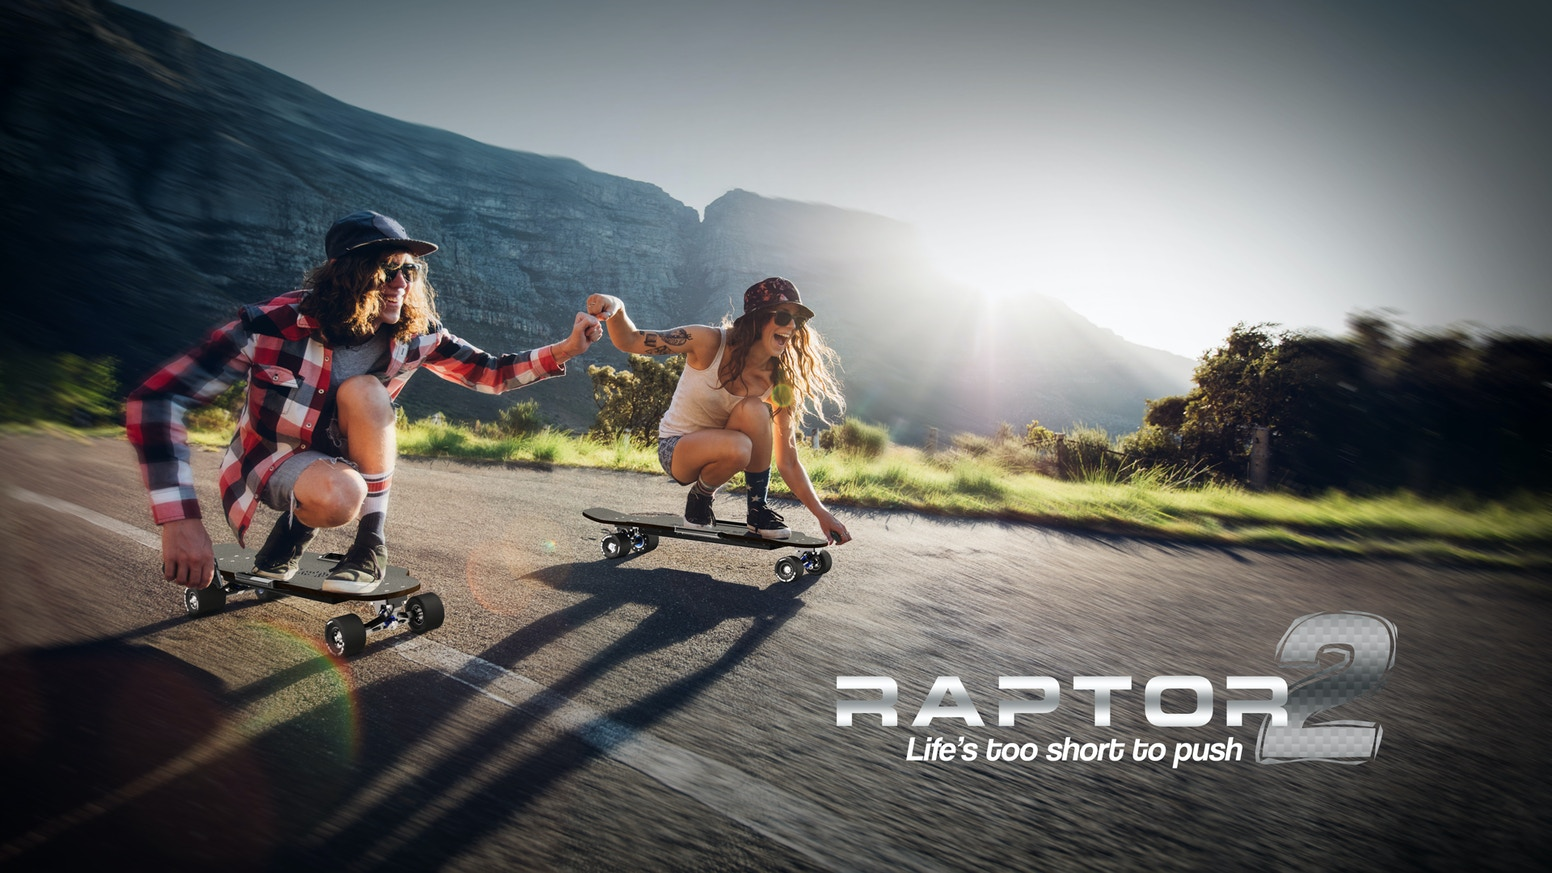 Introducing the Raptor 2. The world's most powerful direct drive electric skateboard. Featuring 28mph top speed & Over 25-mile range.